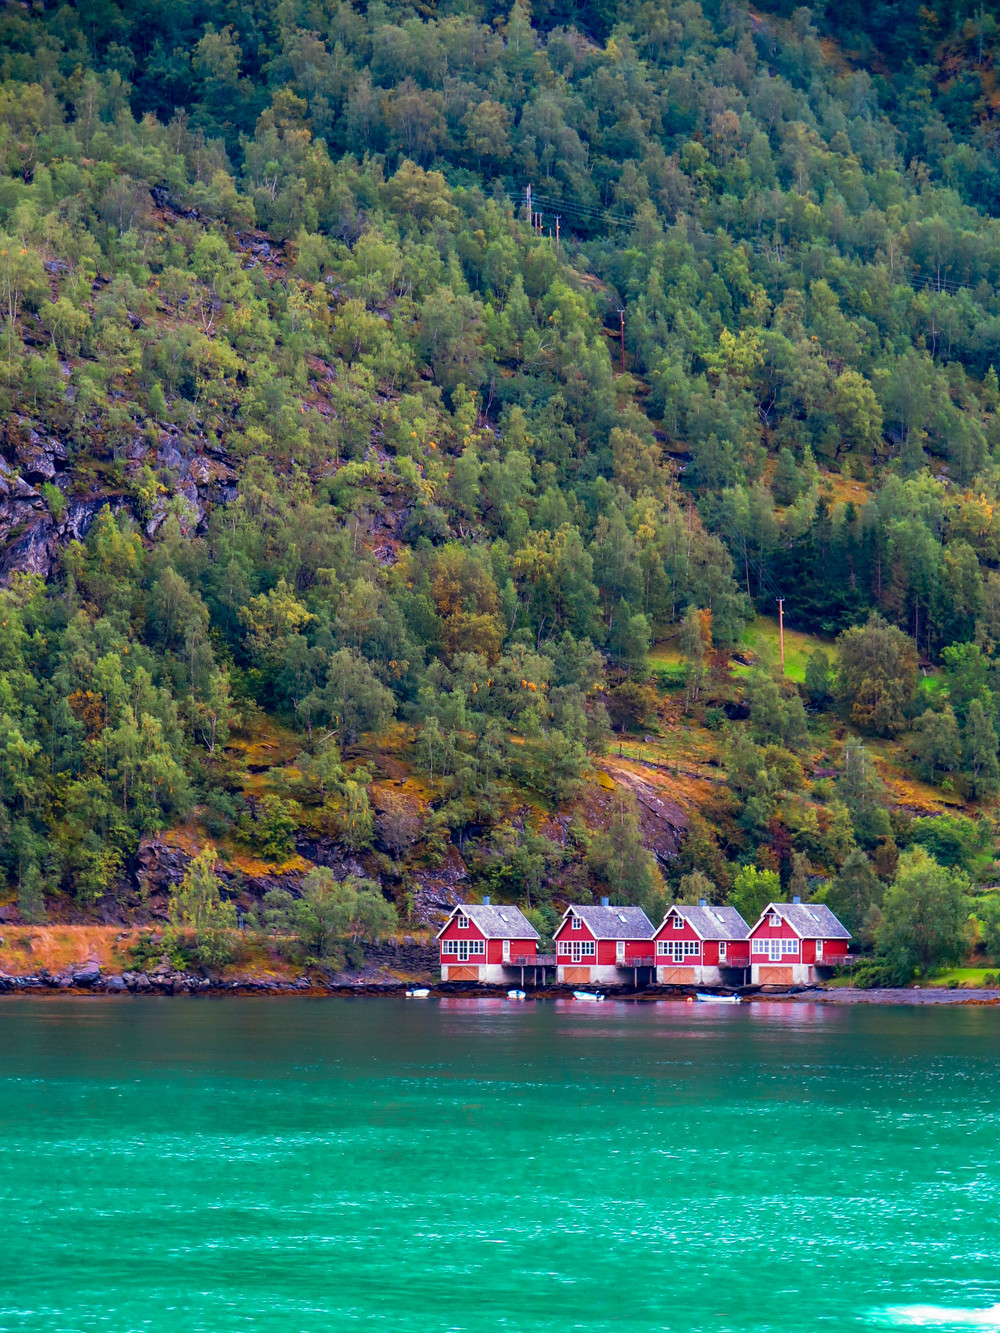 Tiny houses in Flam along the fjord